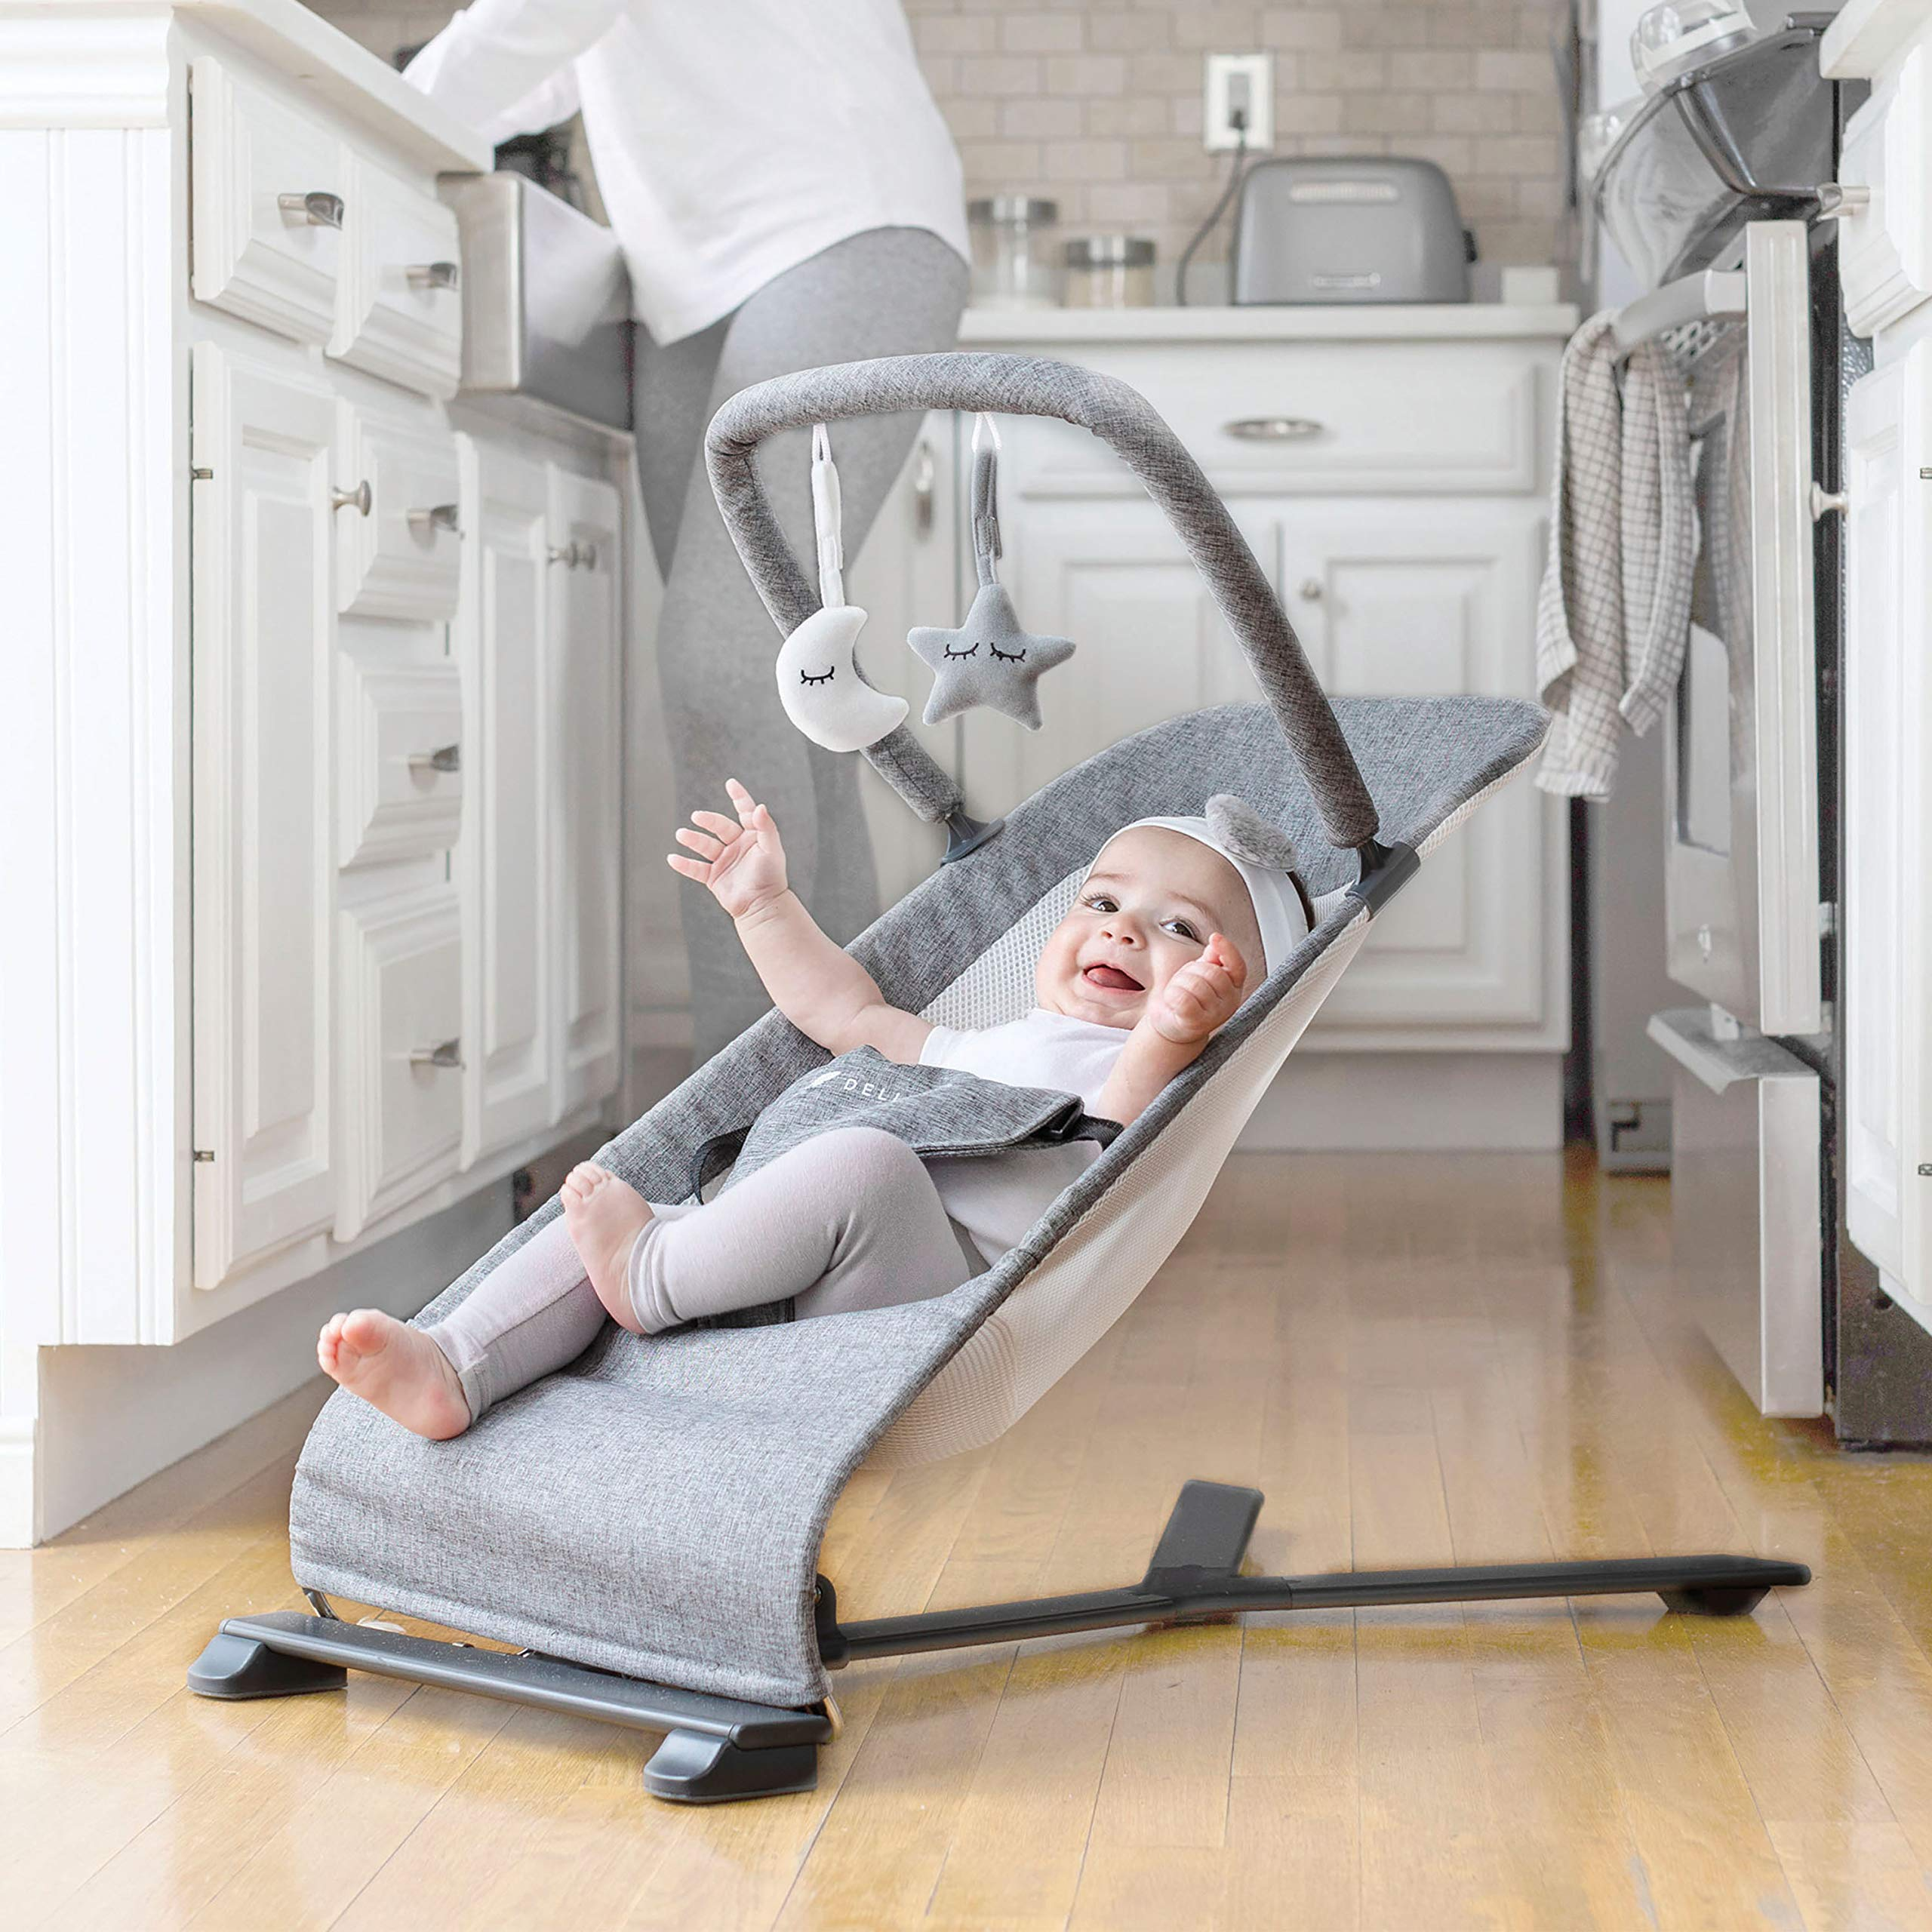 Baby Delight Portable Bouncer Charcoal